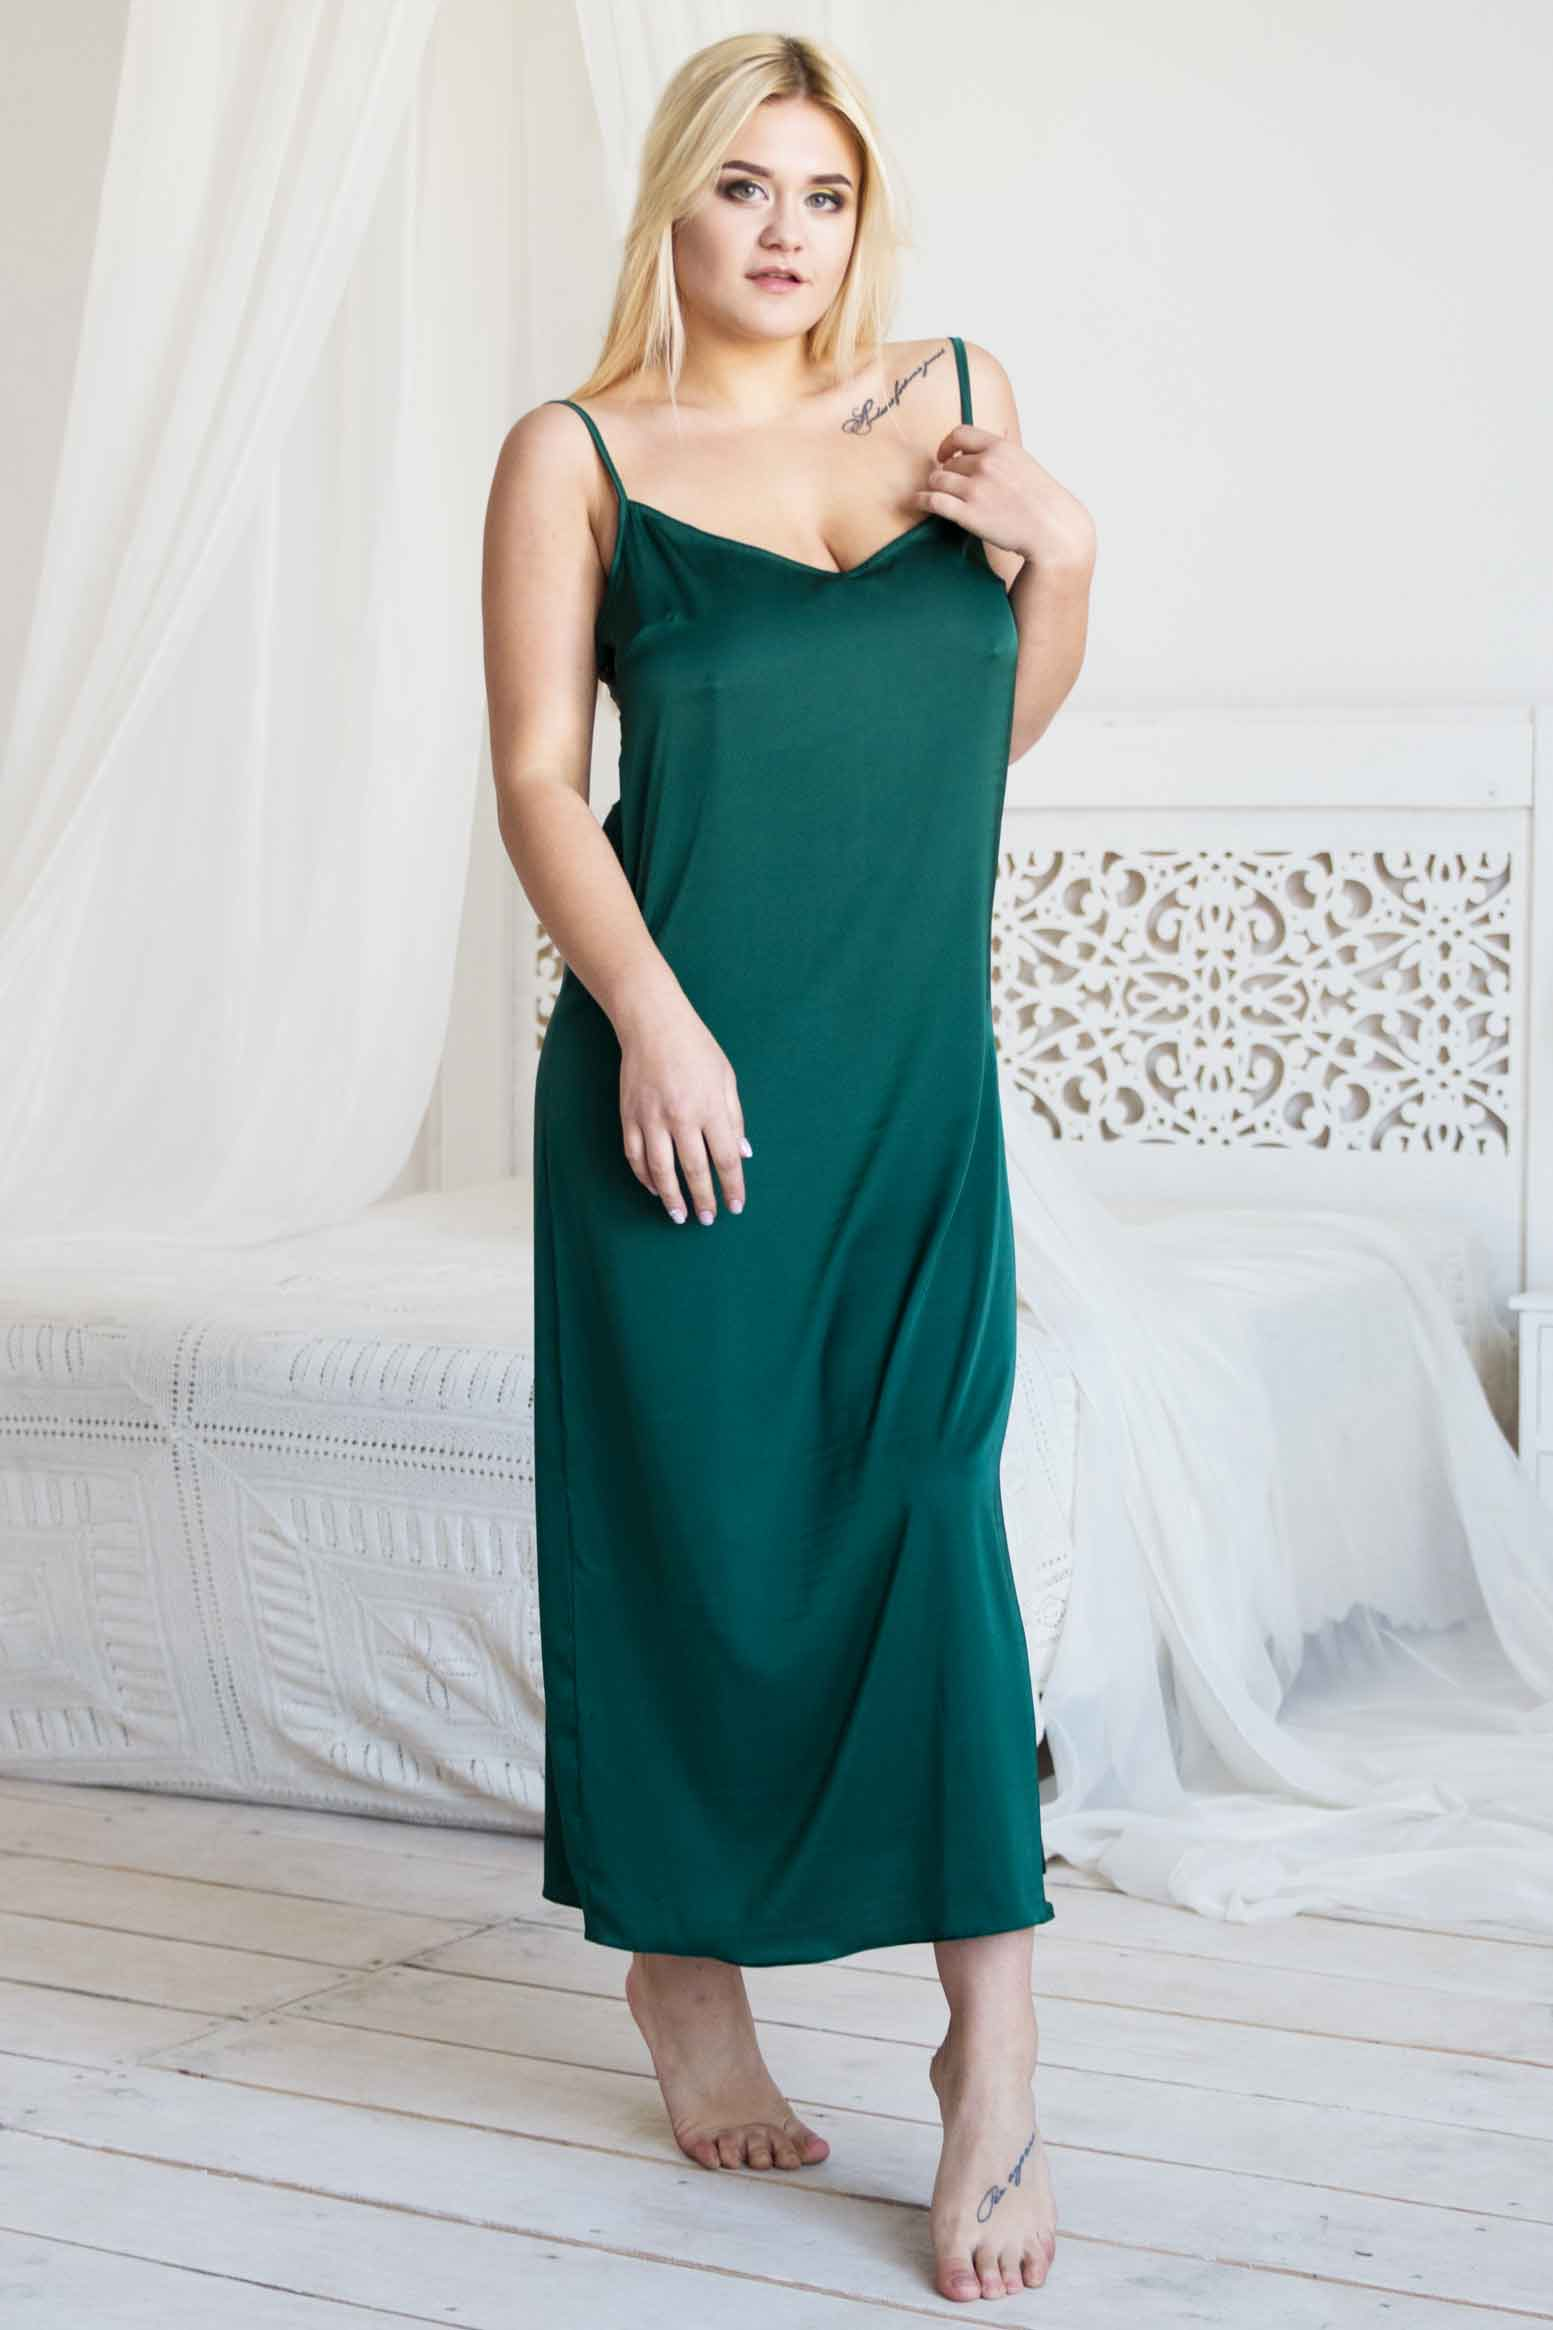 What to Wear on Your Wedding Night - Outfit Ideas